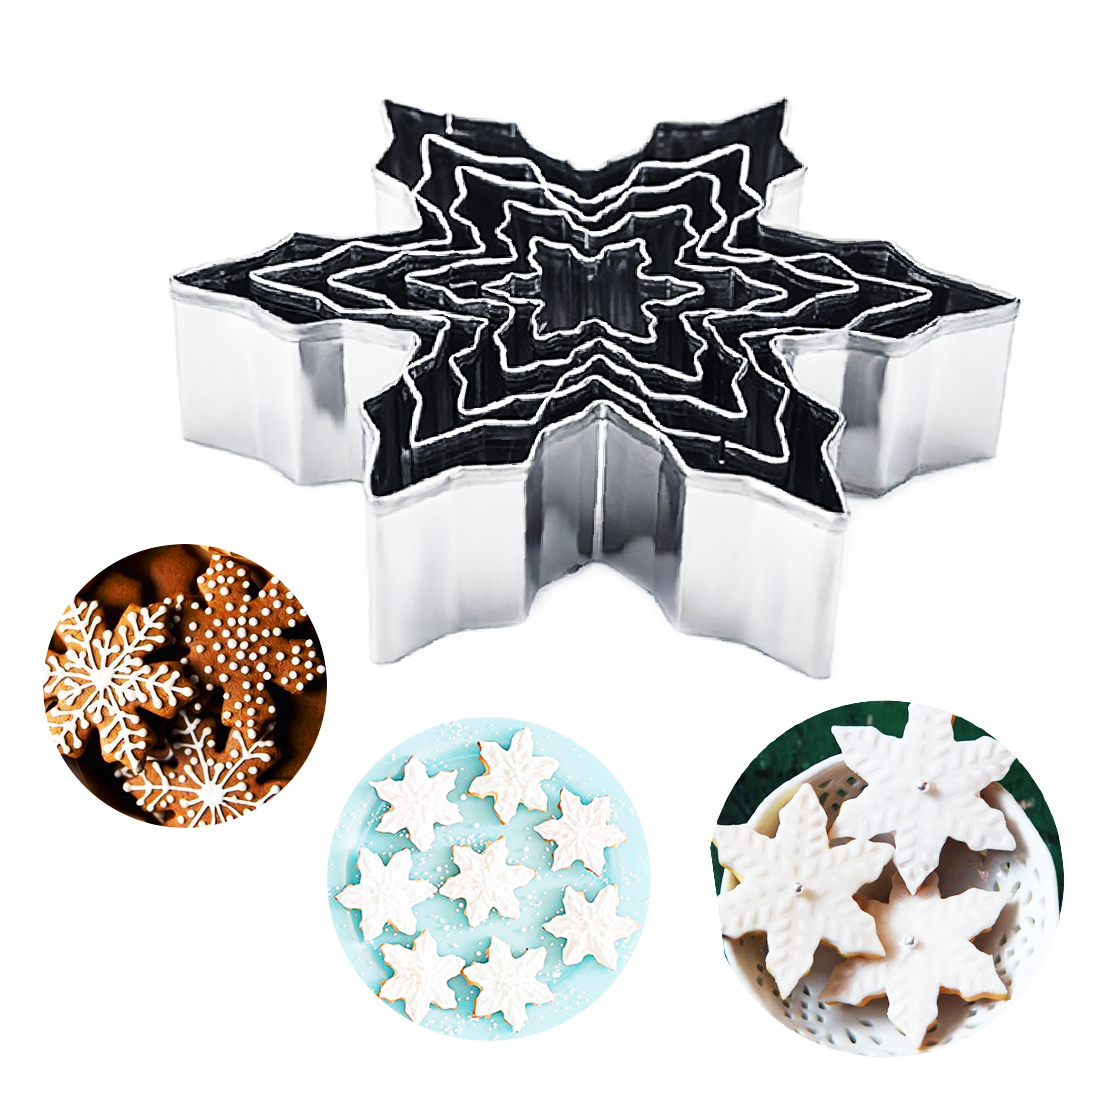 Cookie Stamp 5pcs/set Snowflake Shape Stainless Steel Cake Mold 3D Cookie Cutter Fondant Cake Stencils Kitchen Baking Tools